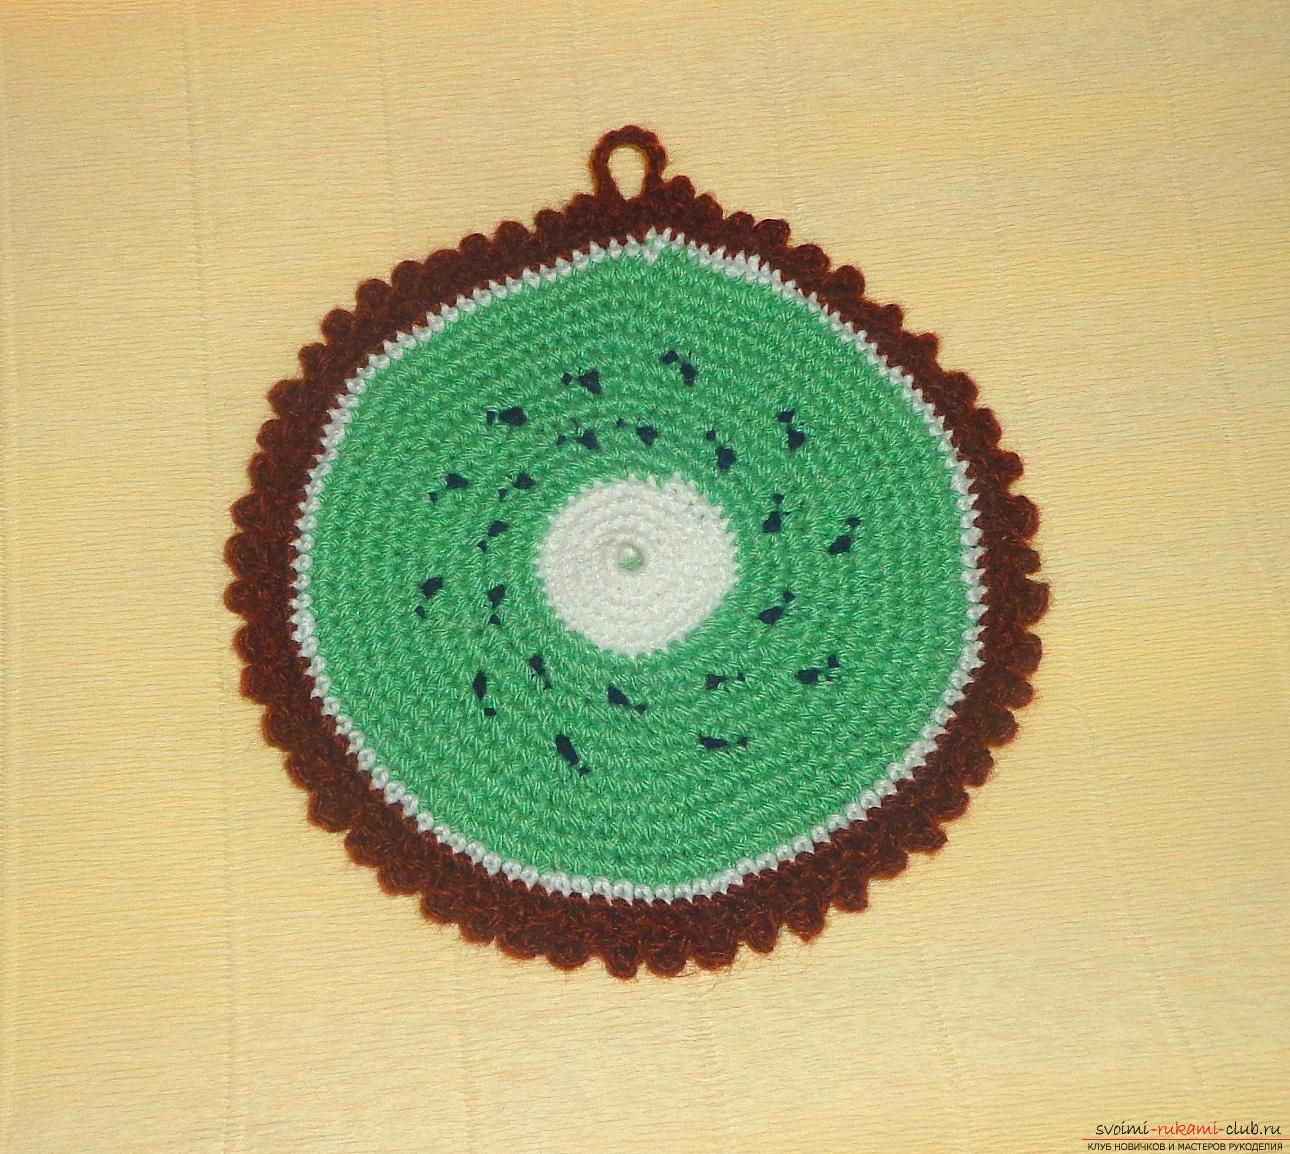 Crochet crochet lesson for hot Kiwi with a description of steps and photos. Photo Number 11